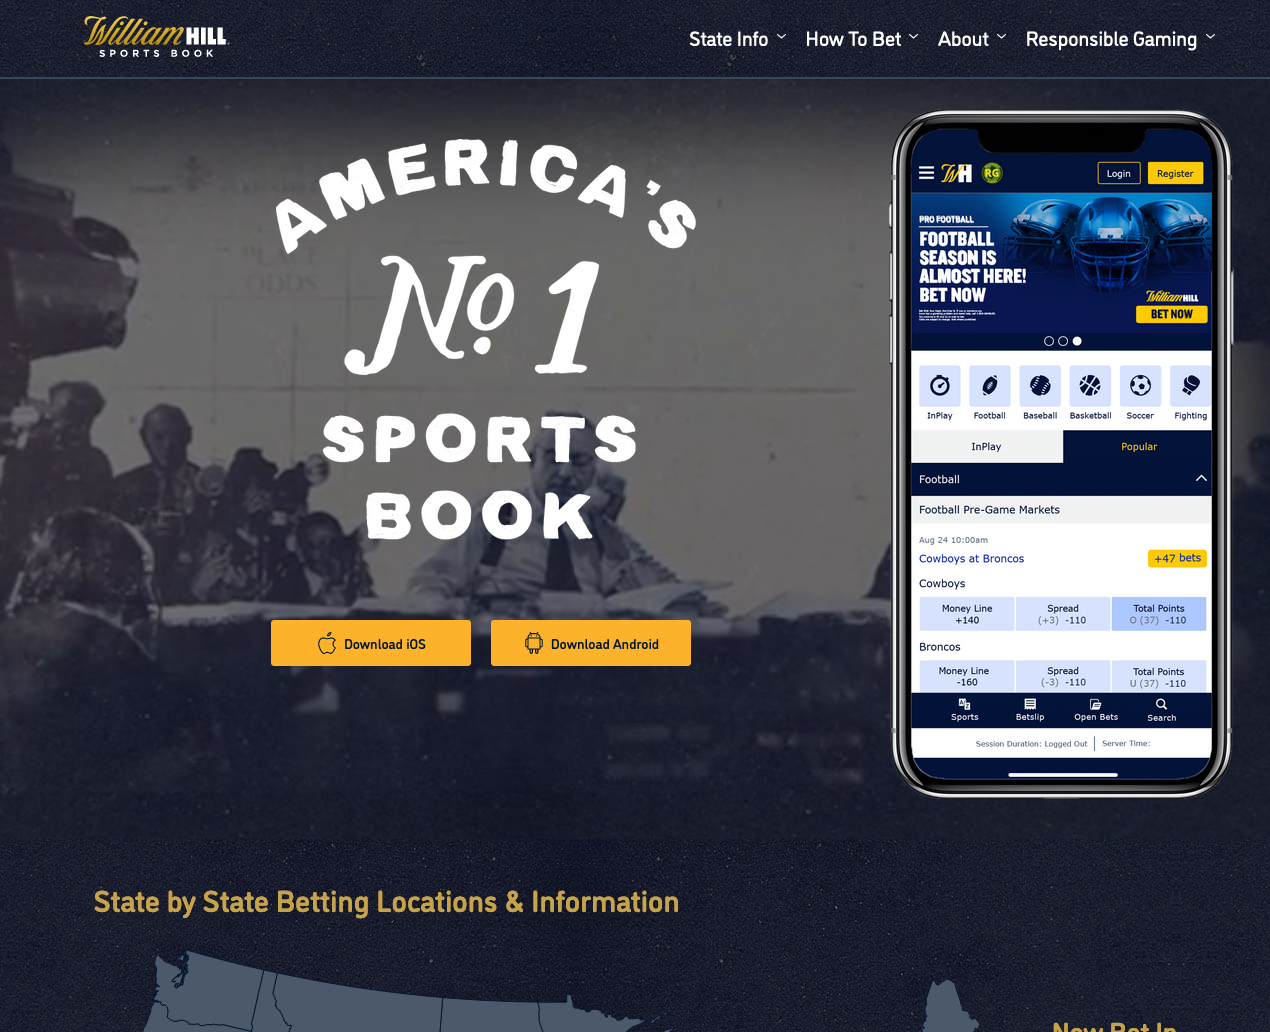 William Hill Race and Sportsbook